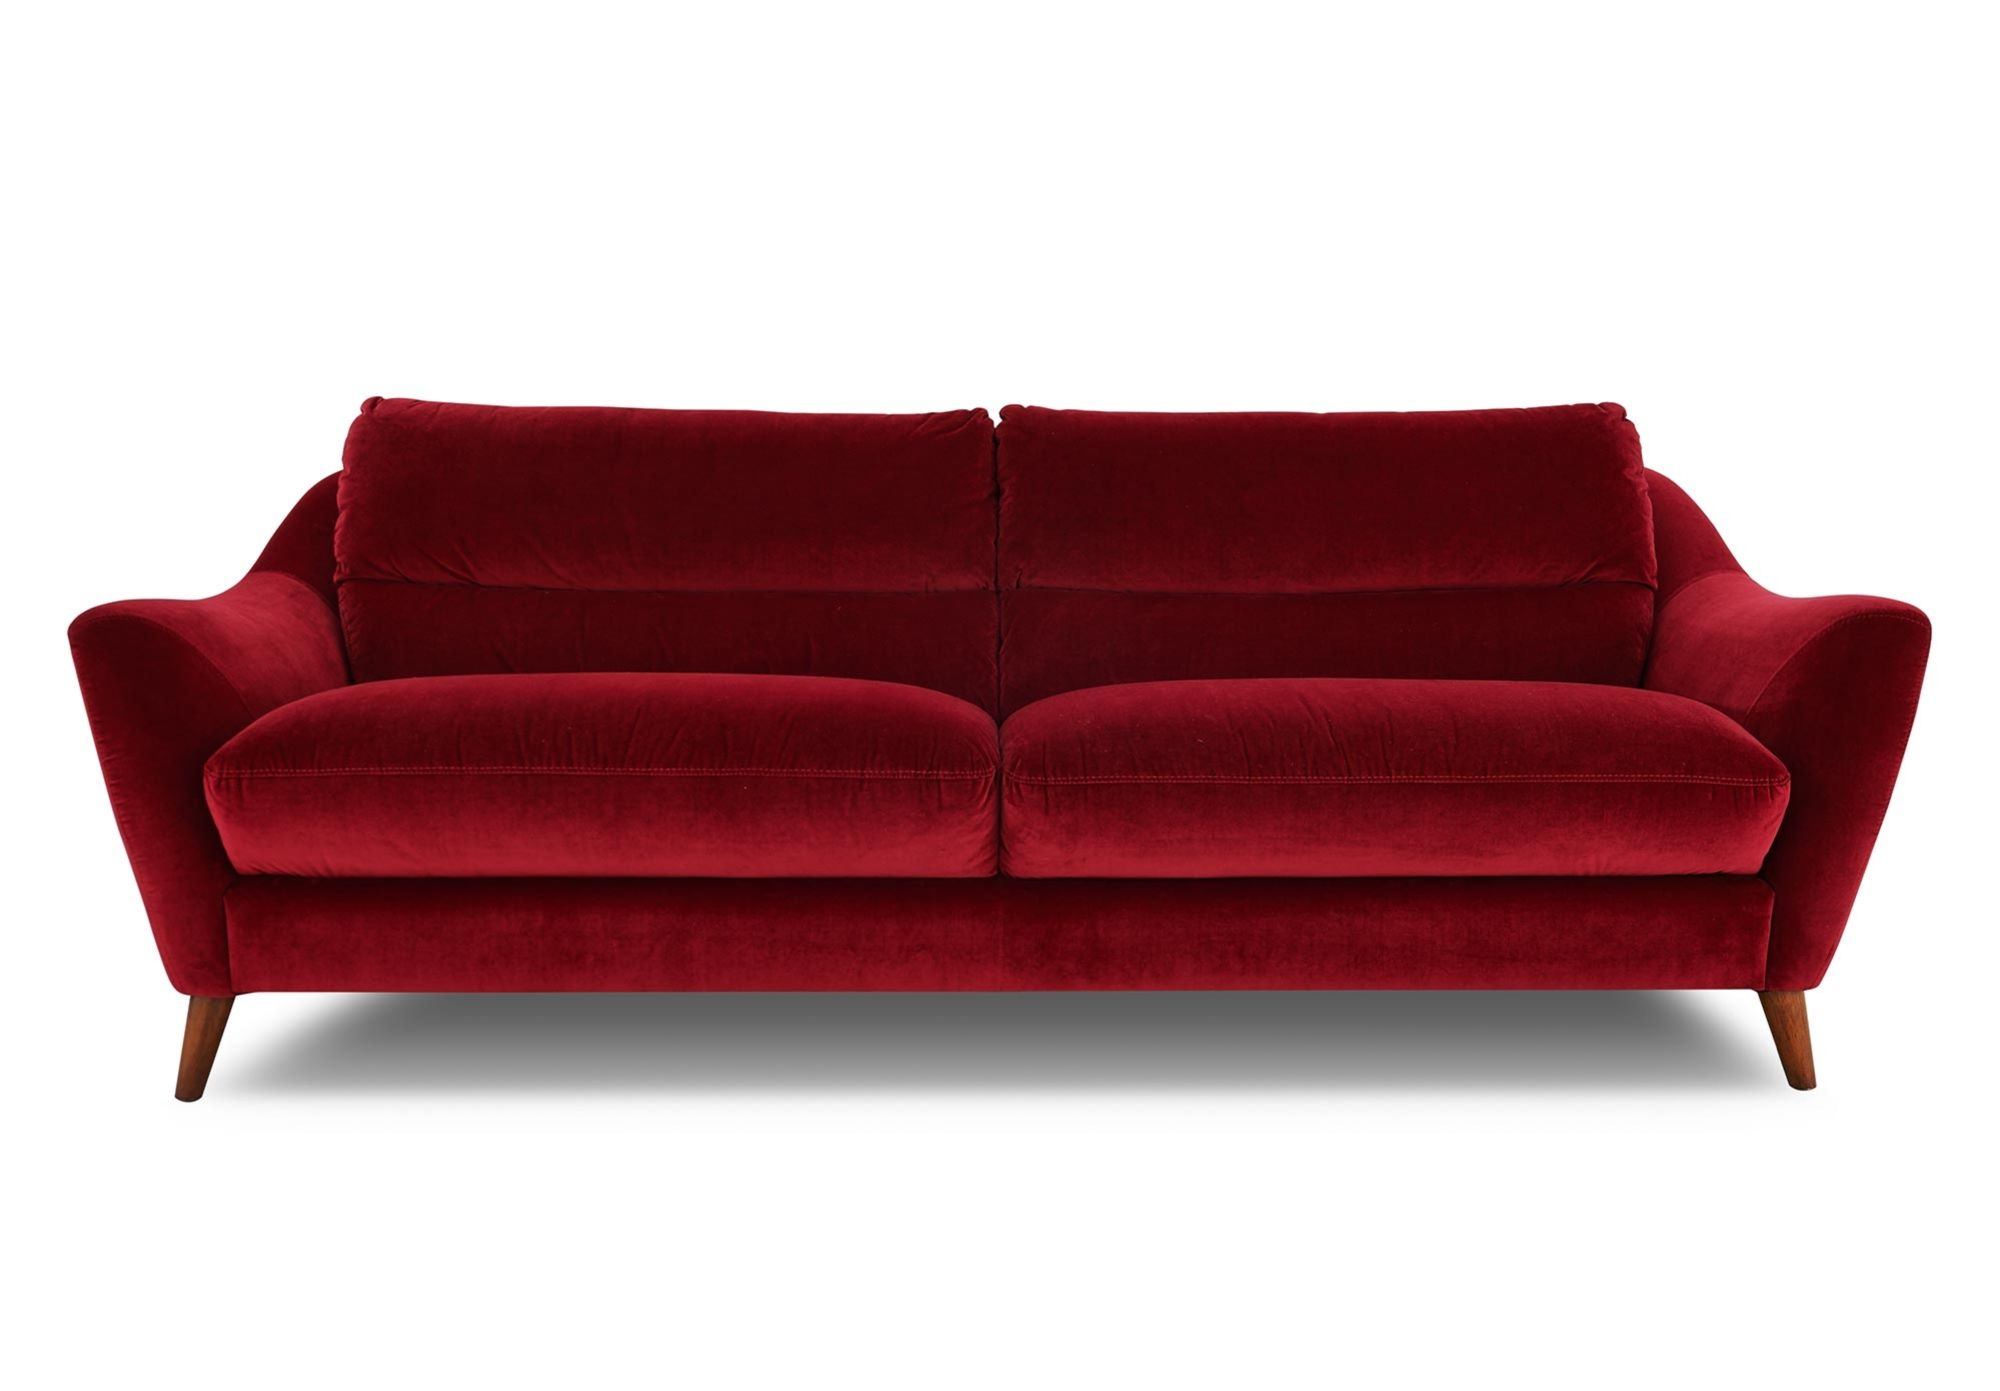 Premier Remy 3 Seater Fabric Sofa At Furniture Village Upholstered